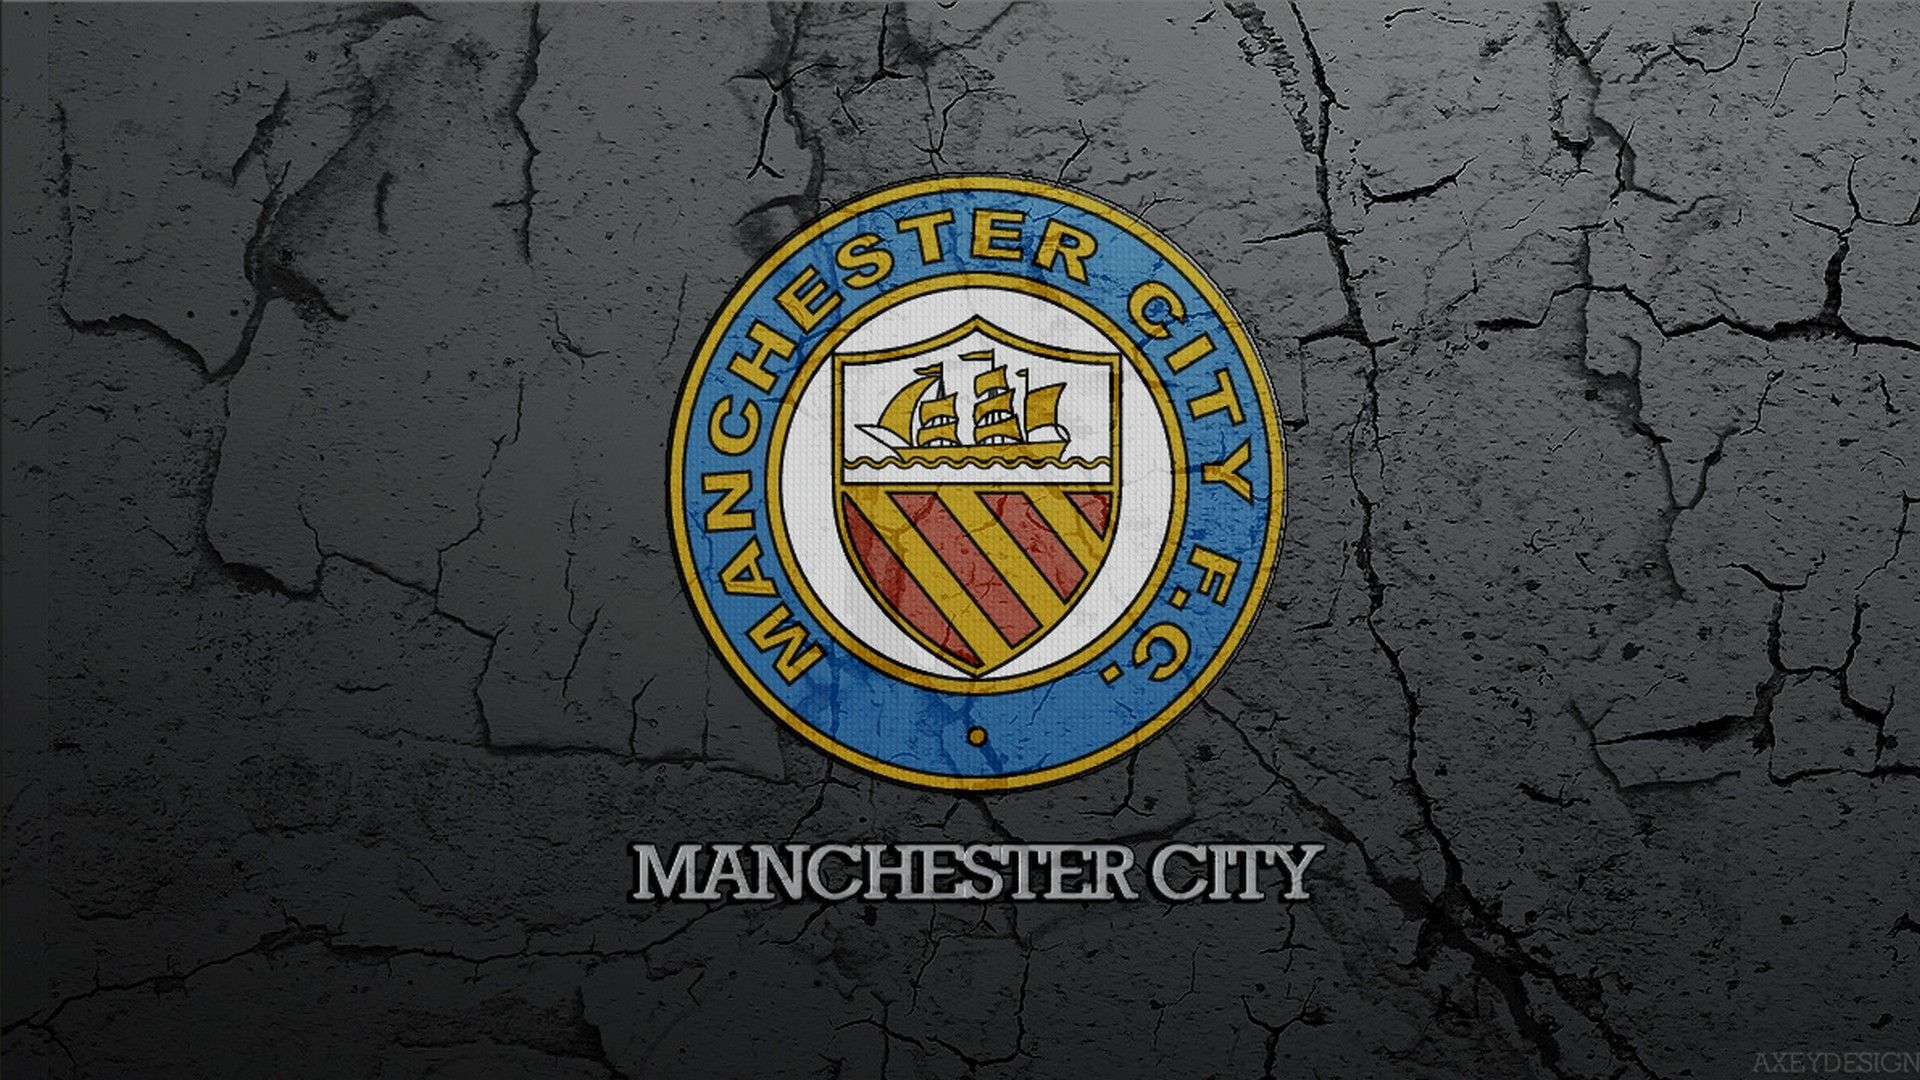 Hd Backgrounds Manchester City Best Football Wallpaper Hd Manchester City Wallpaper City Wallpaper Manchester City